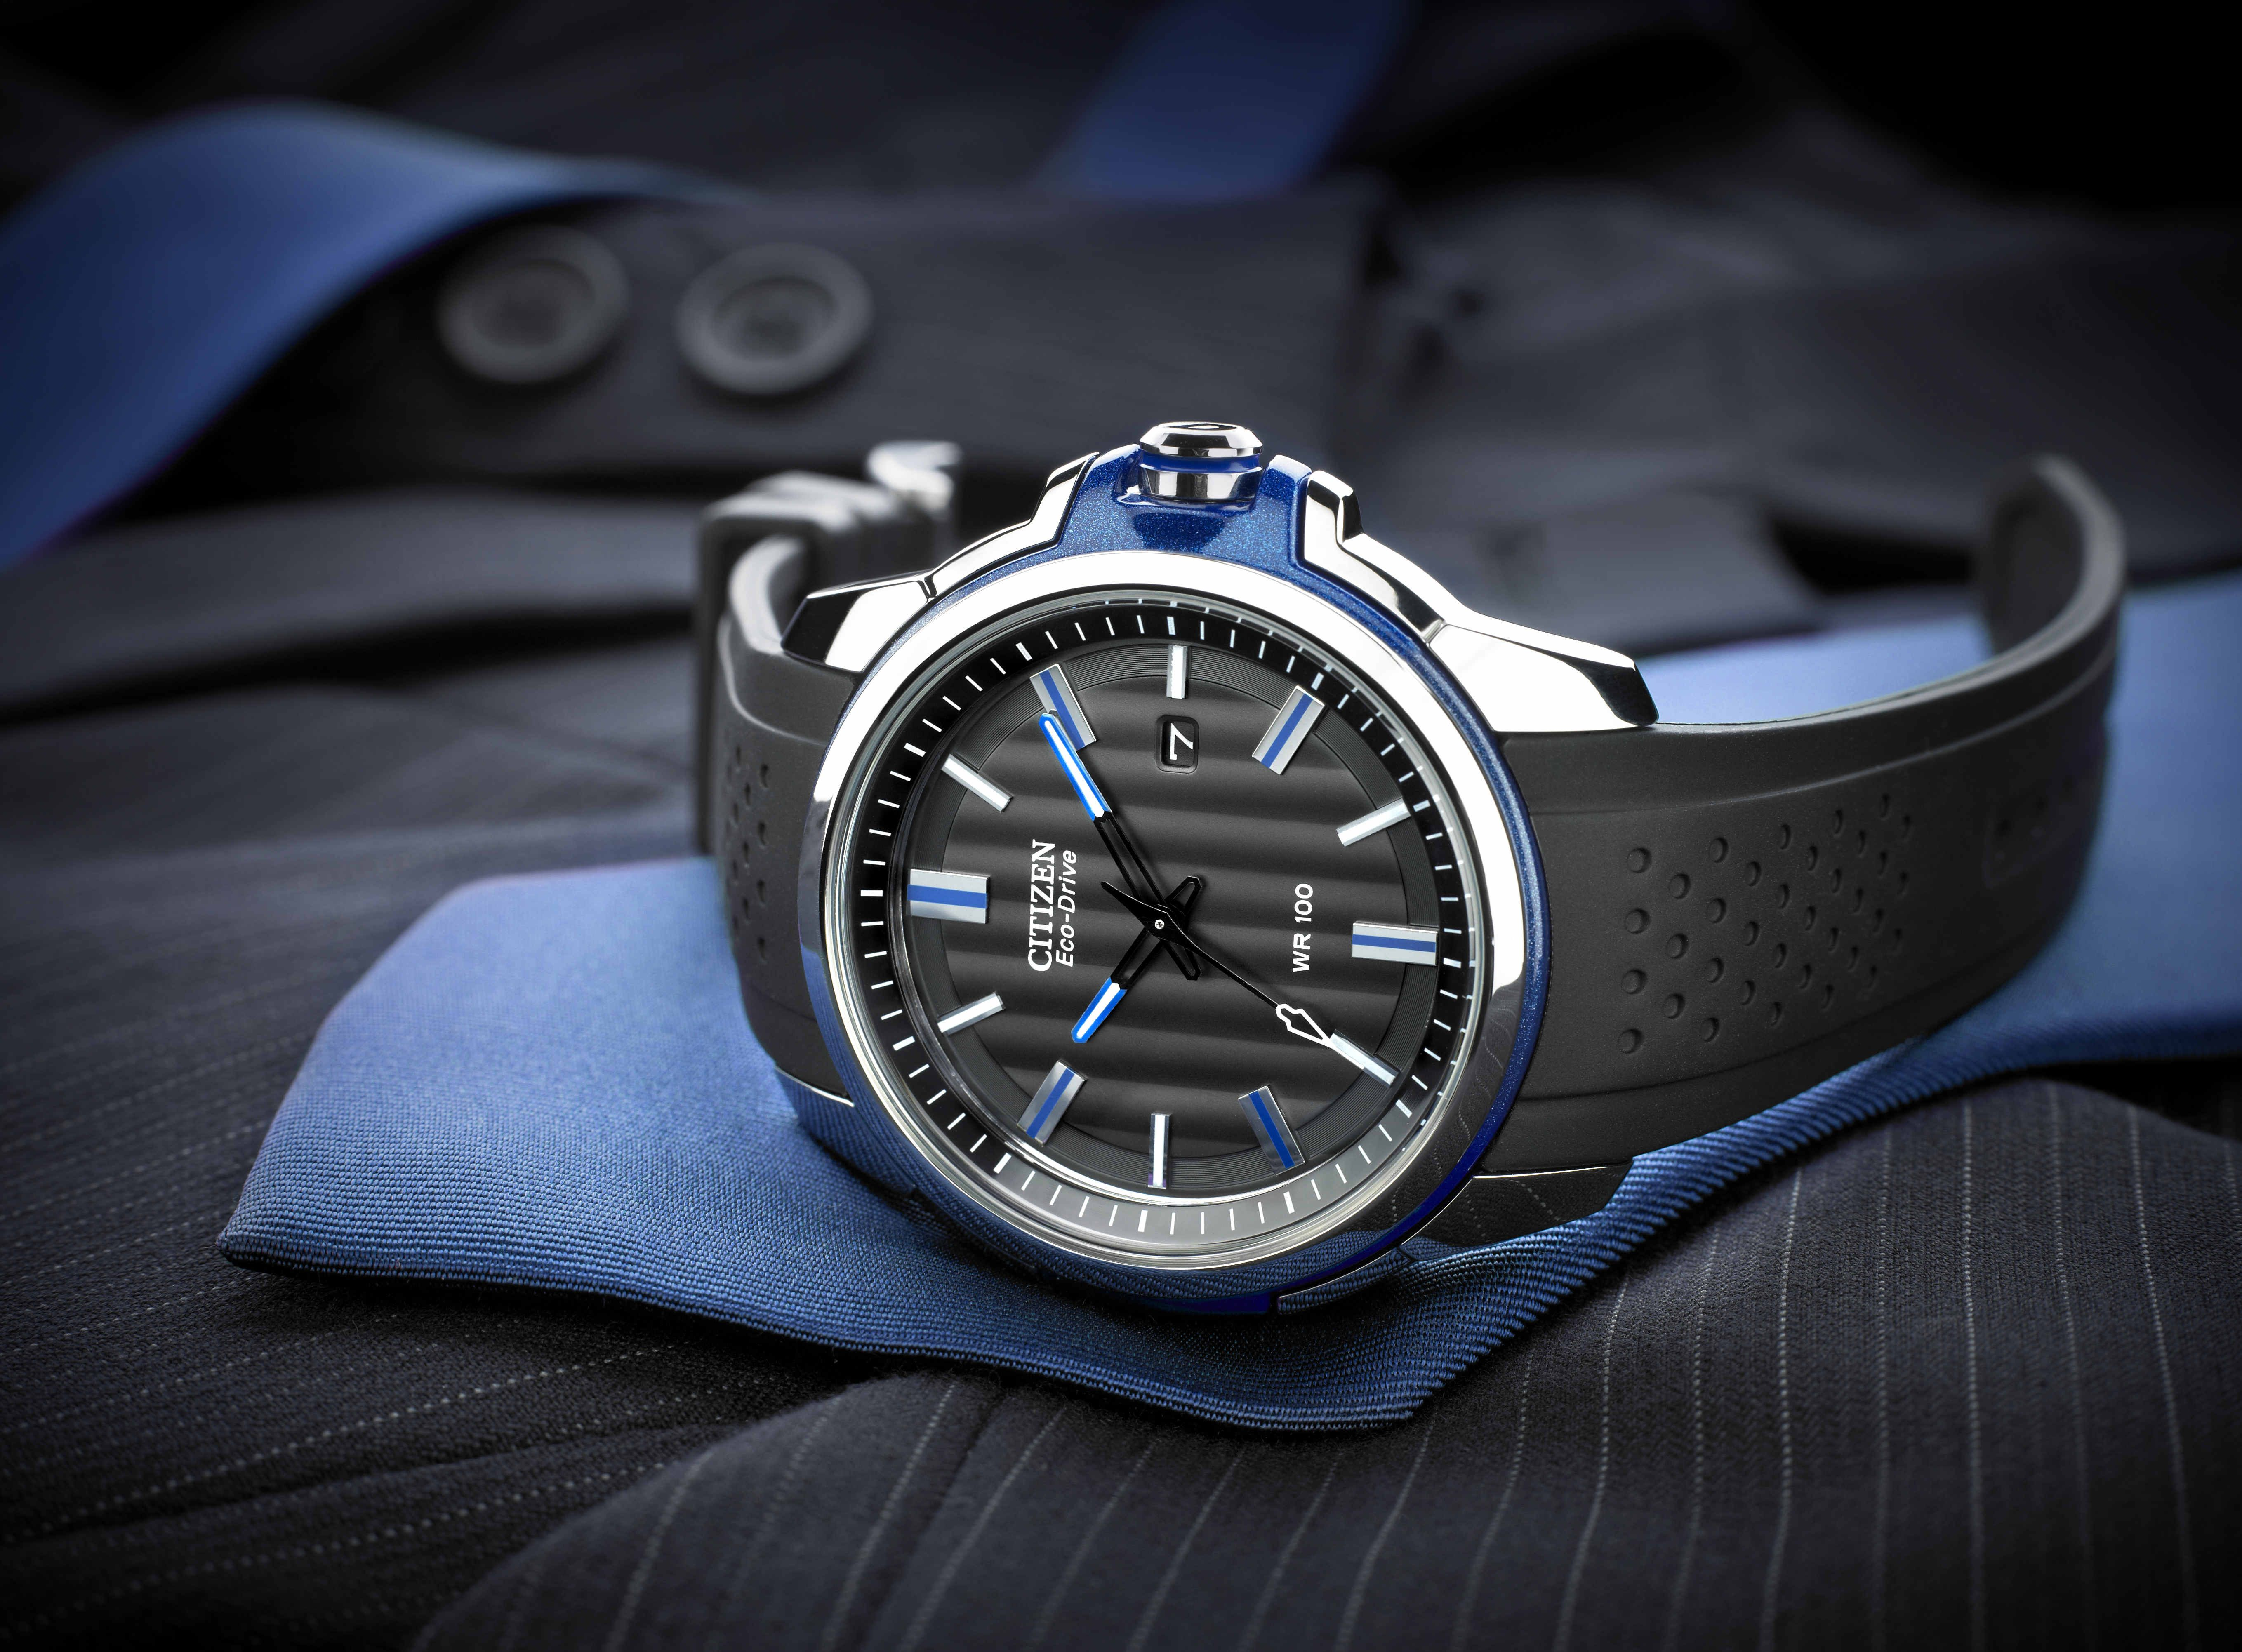 Something different for the office, this timepiece meets sport and style head on.